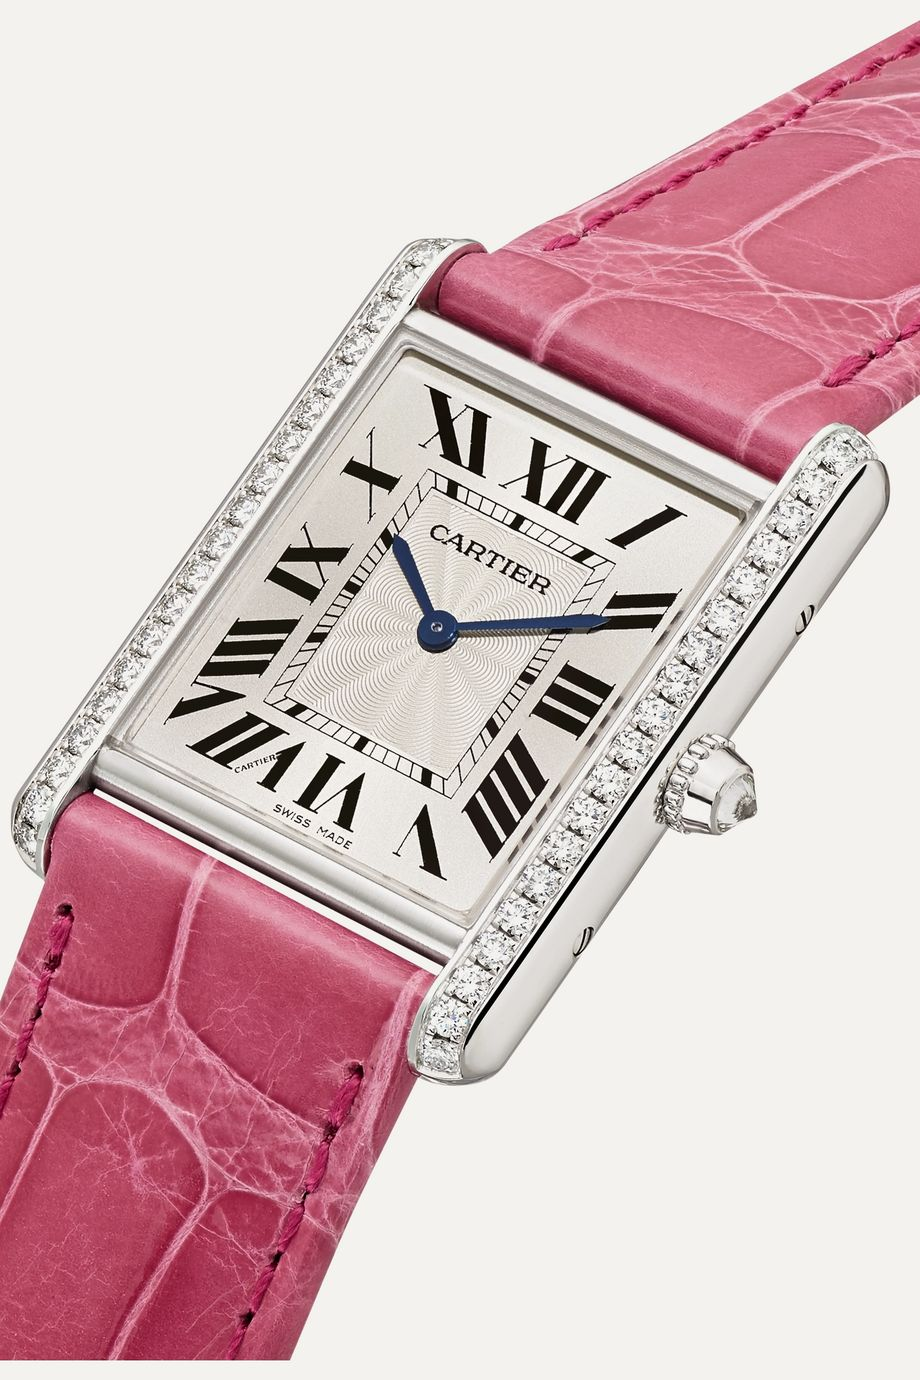 Cartier Tank Louis Cartier 25.5mm large rhodiumized 18-karat white gold, alligator and diamond watch